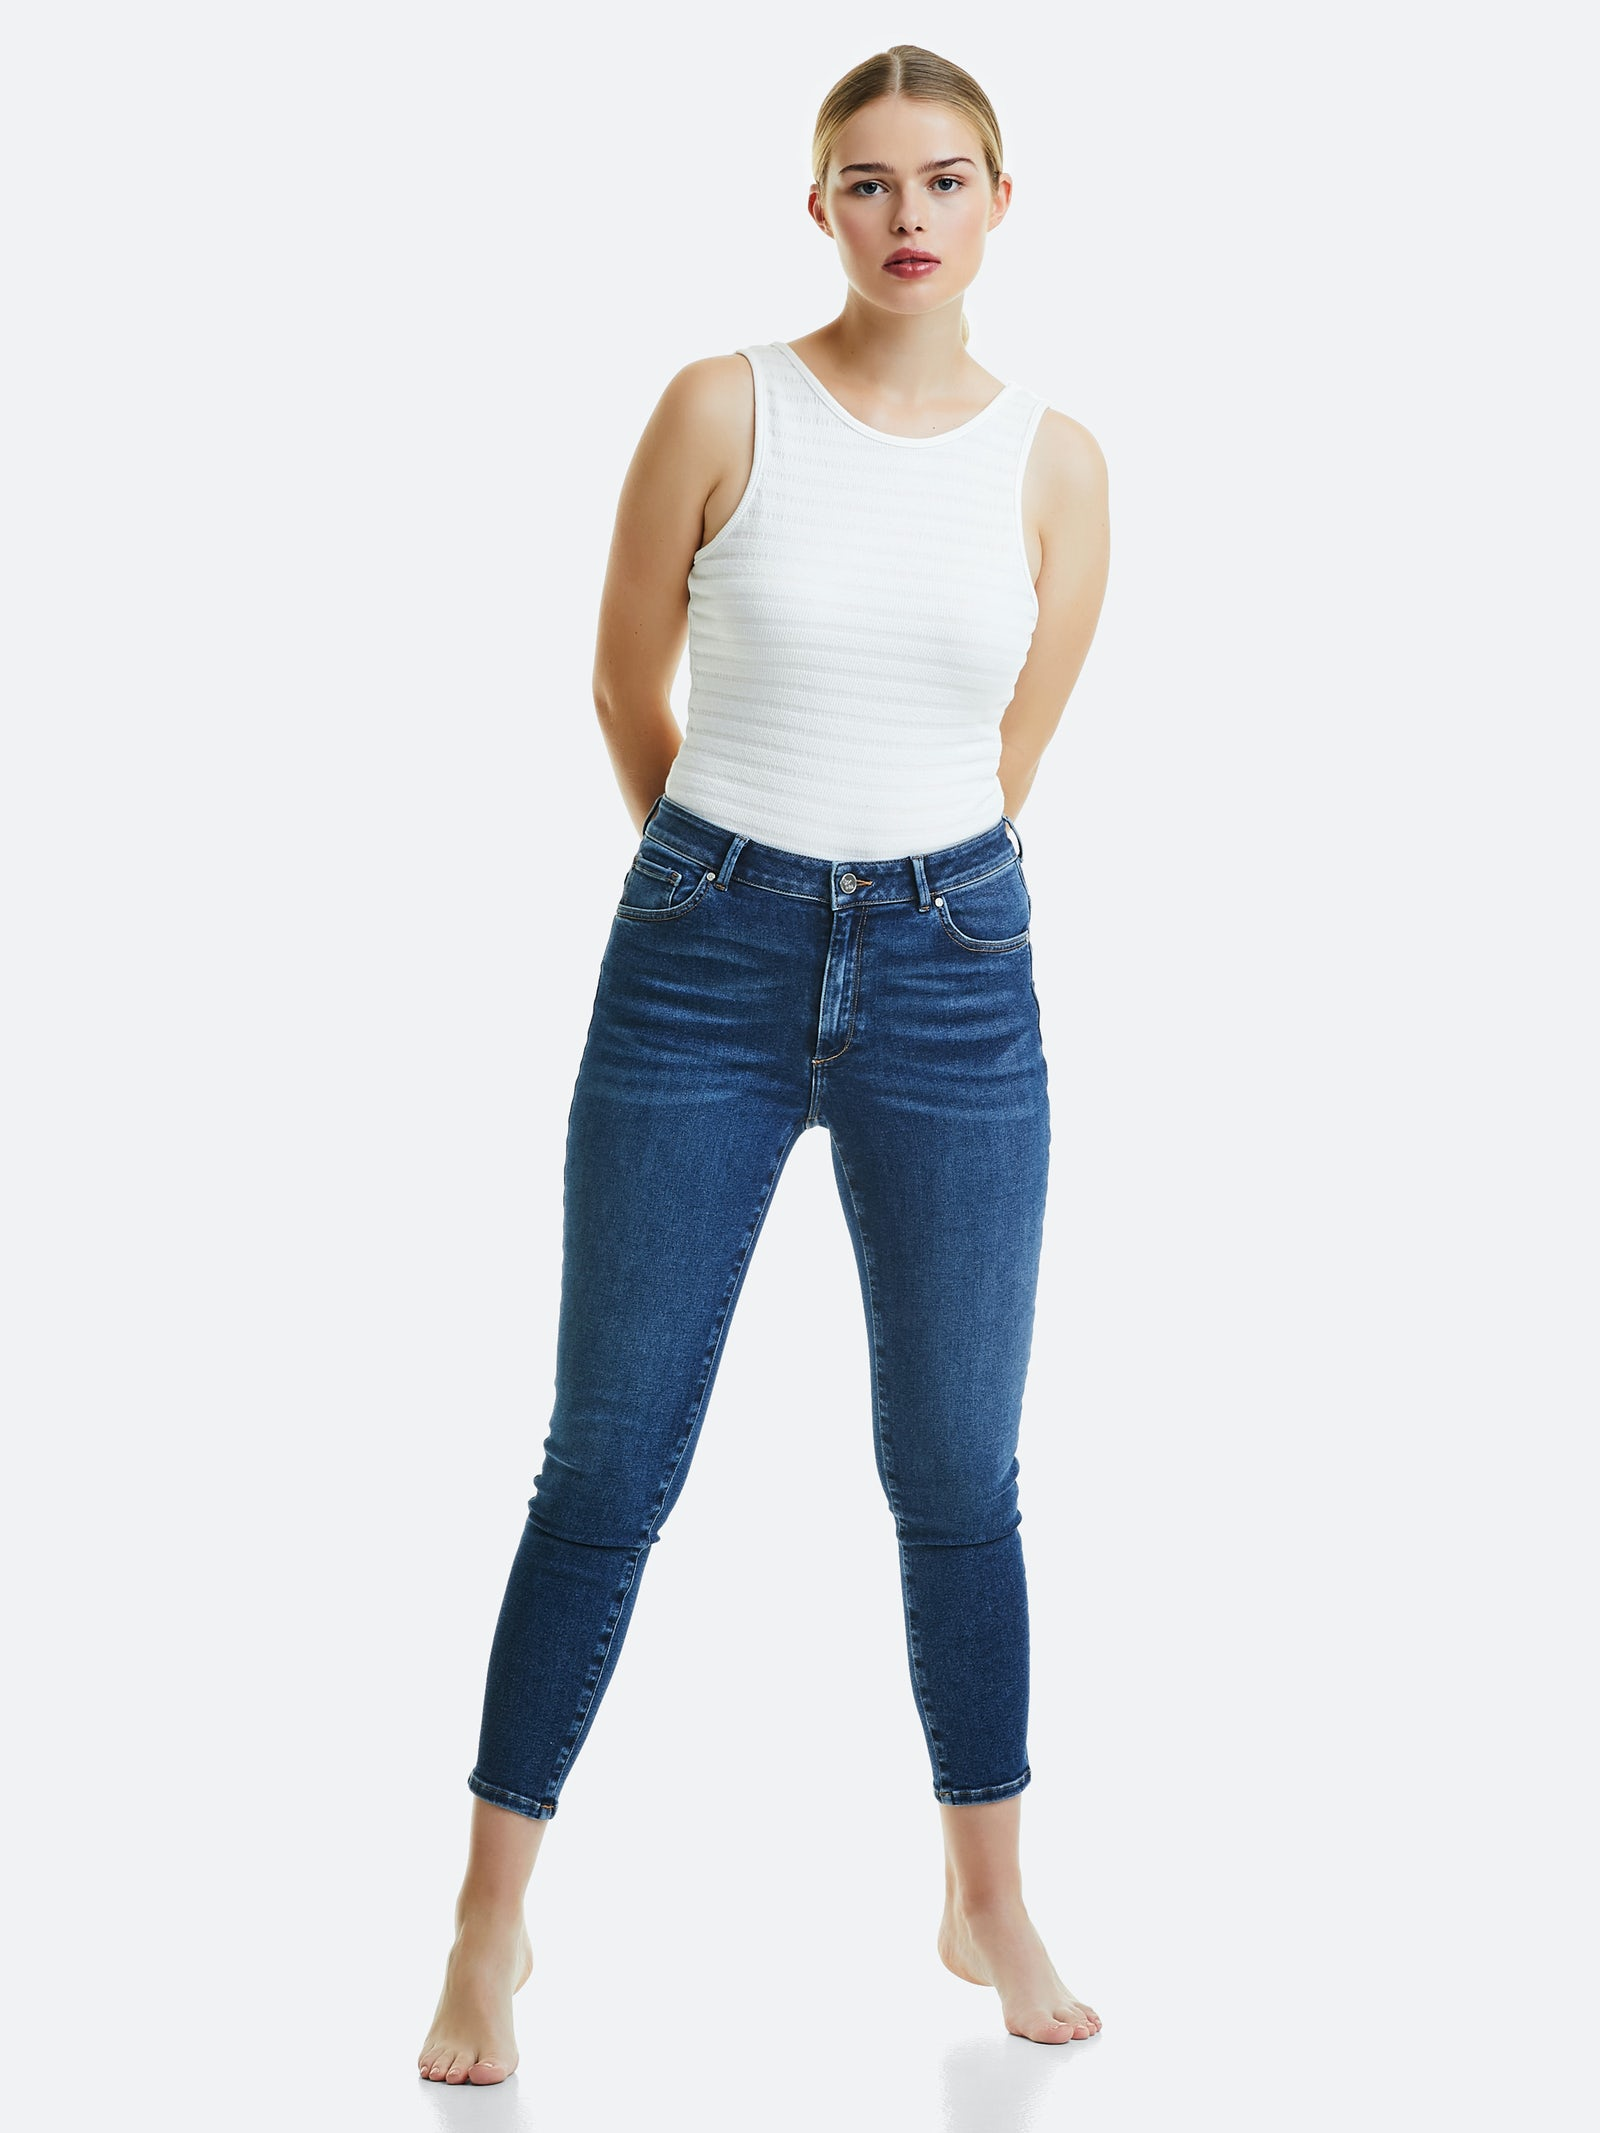 Higher Evo ankle jeans